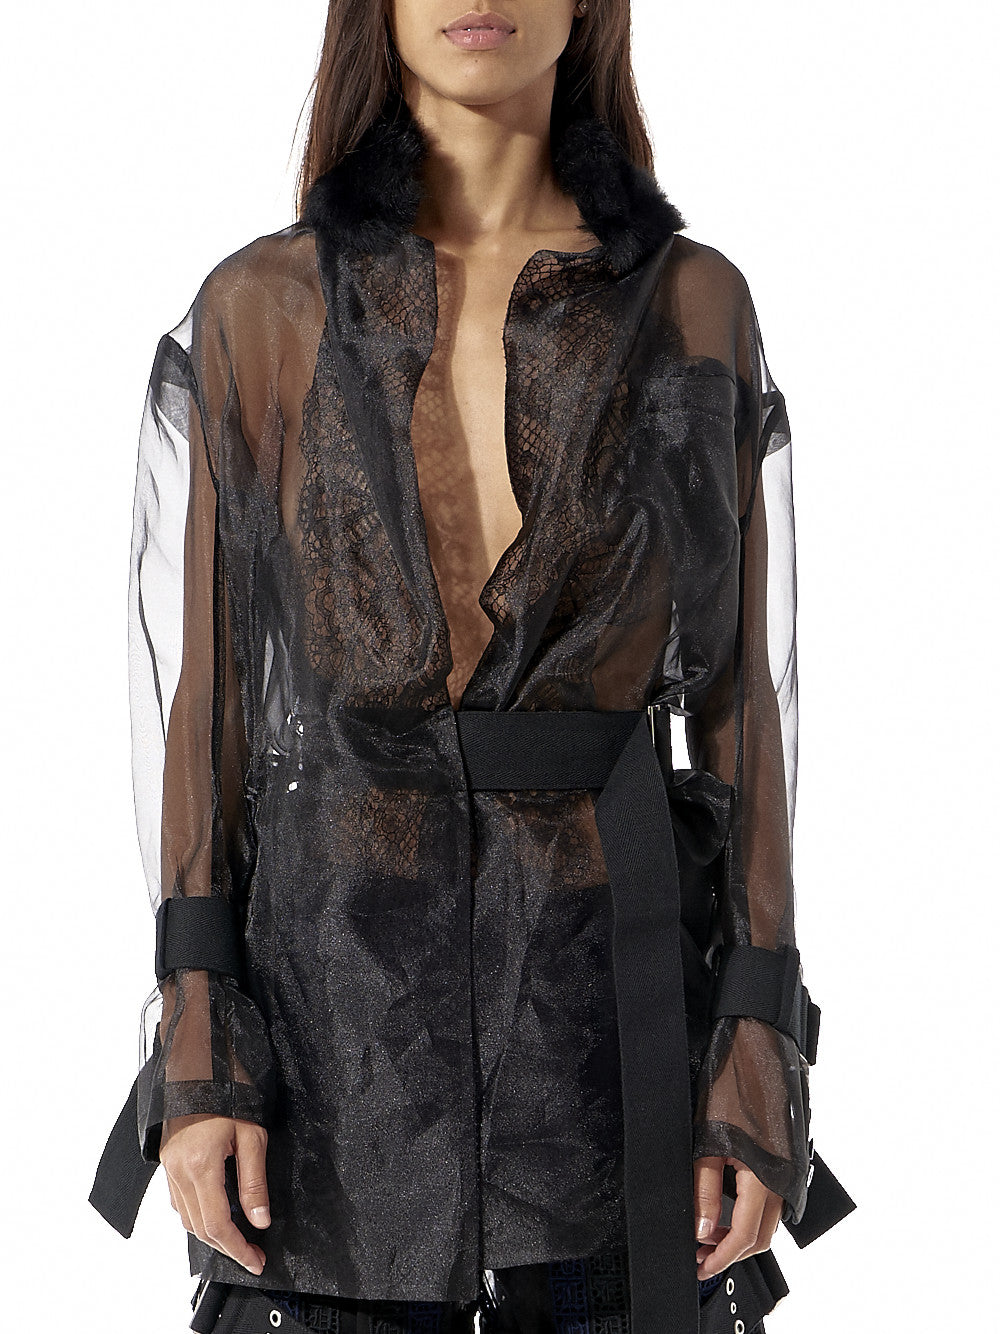 Sheer Belted Top With Fur Collar (16-02835 BLACK) - H. Lorenzo